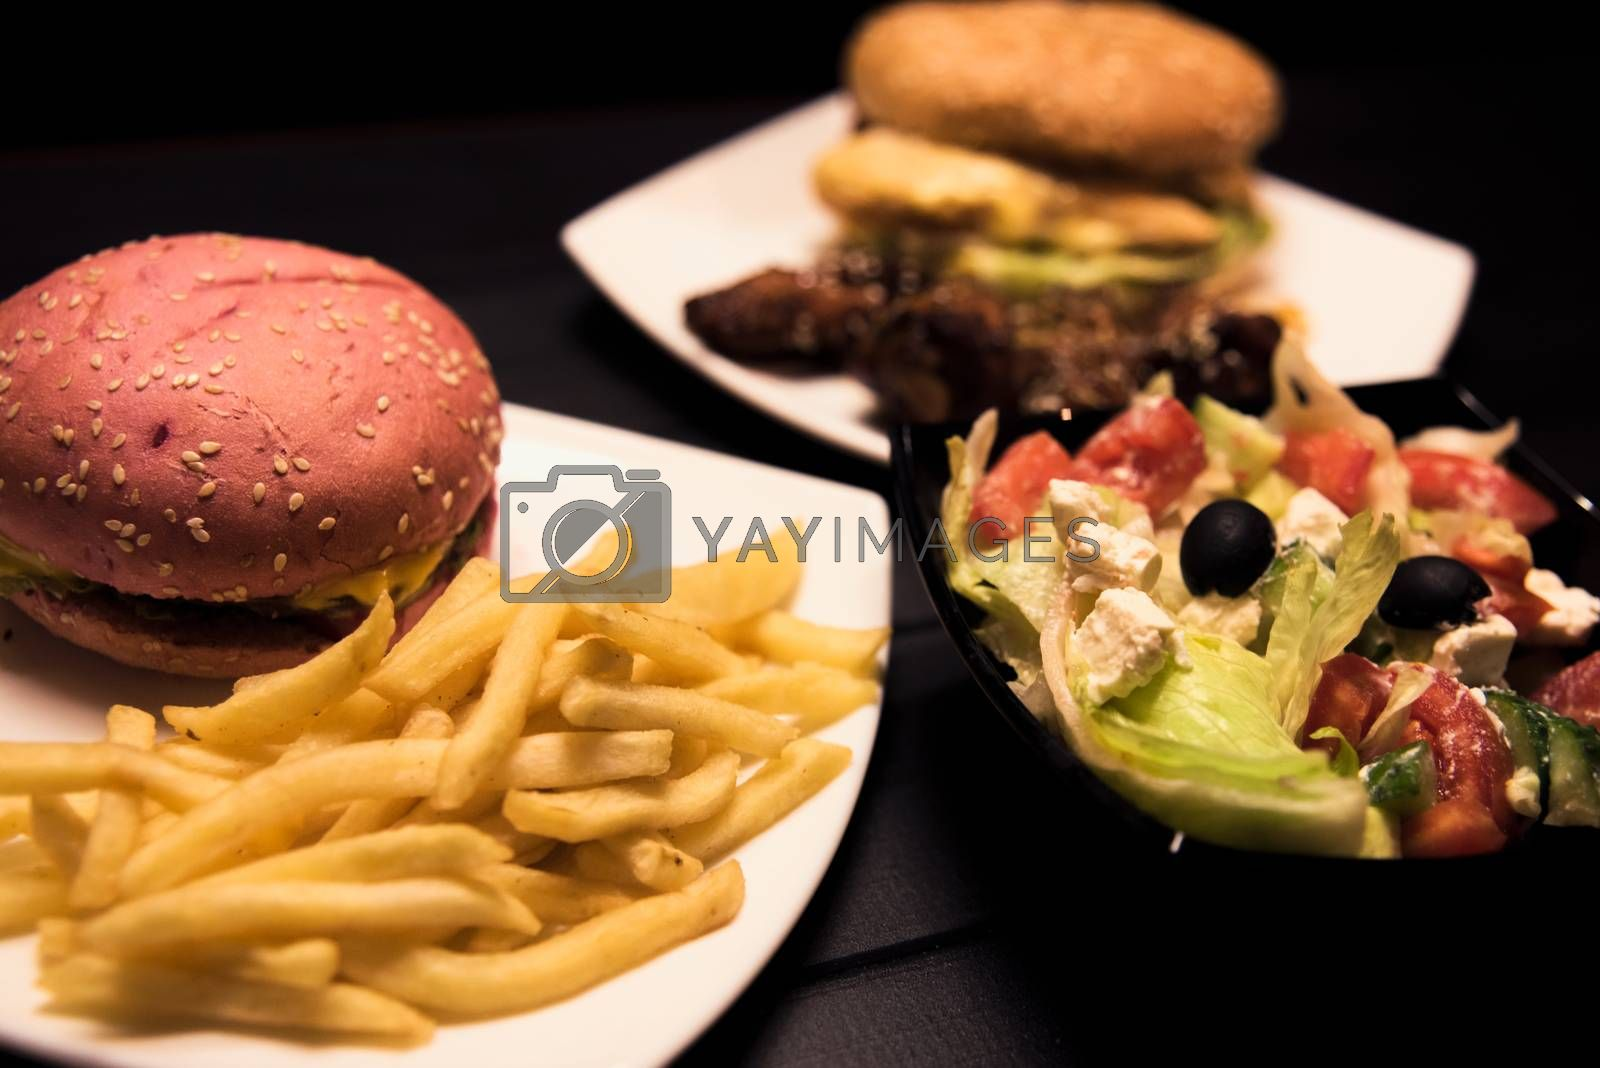 Fast food,tasty food, street food, grilled chicken,burgers, French fries, salad by Nickstock